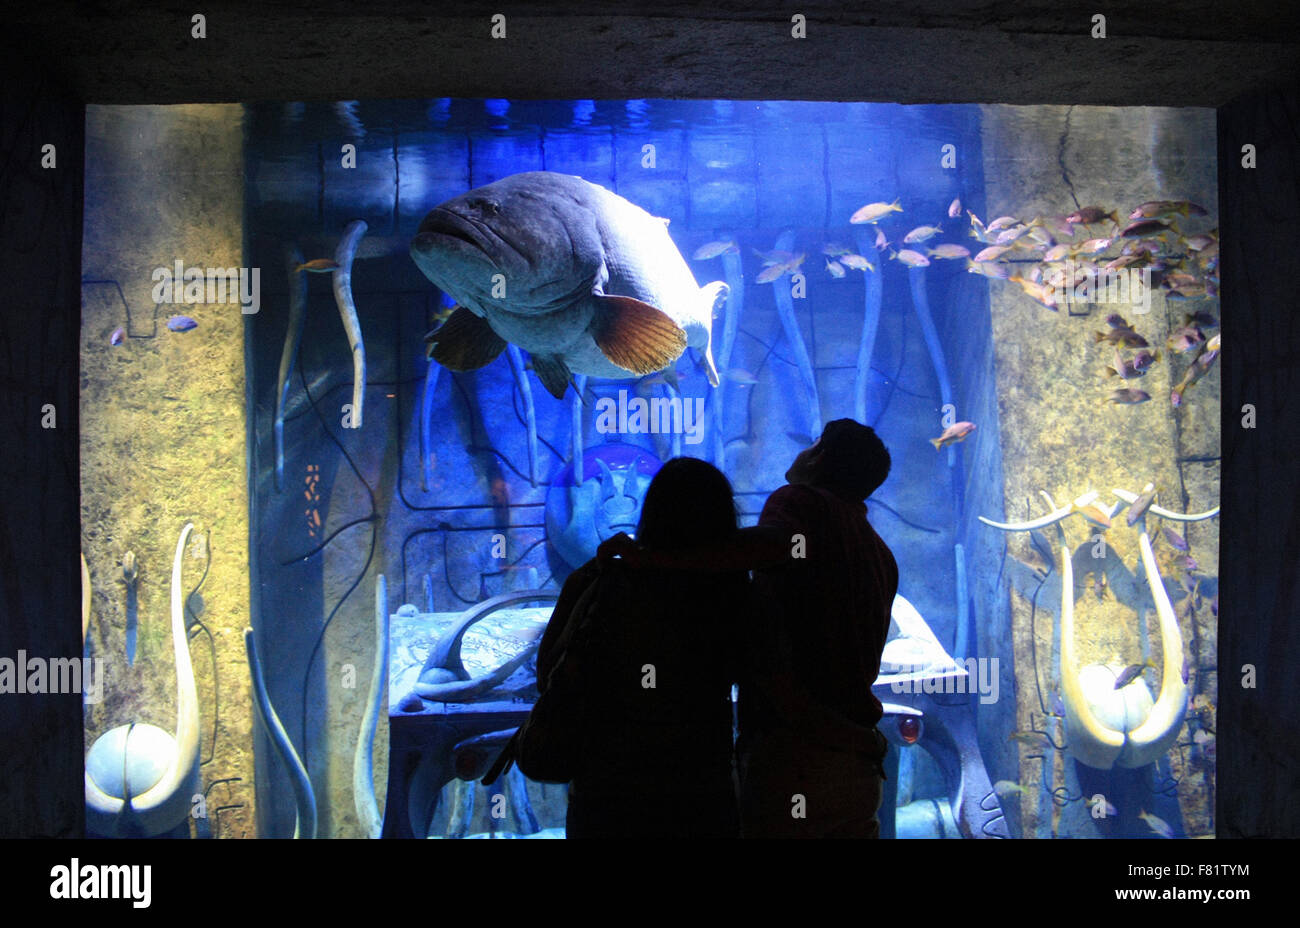 Fish aquarium in uae - Stock Photo Silhouette Of Tourist Couple Looking At A Giant Fish In An Aquarium At Atlantis Hotel Of Dubai Uae